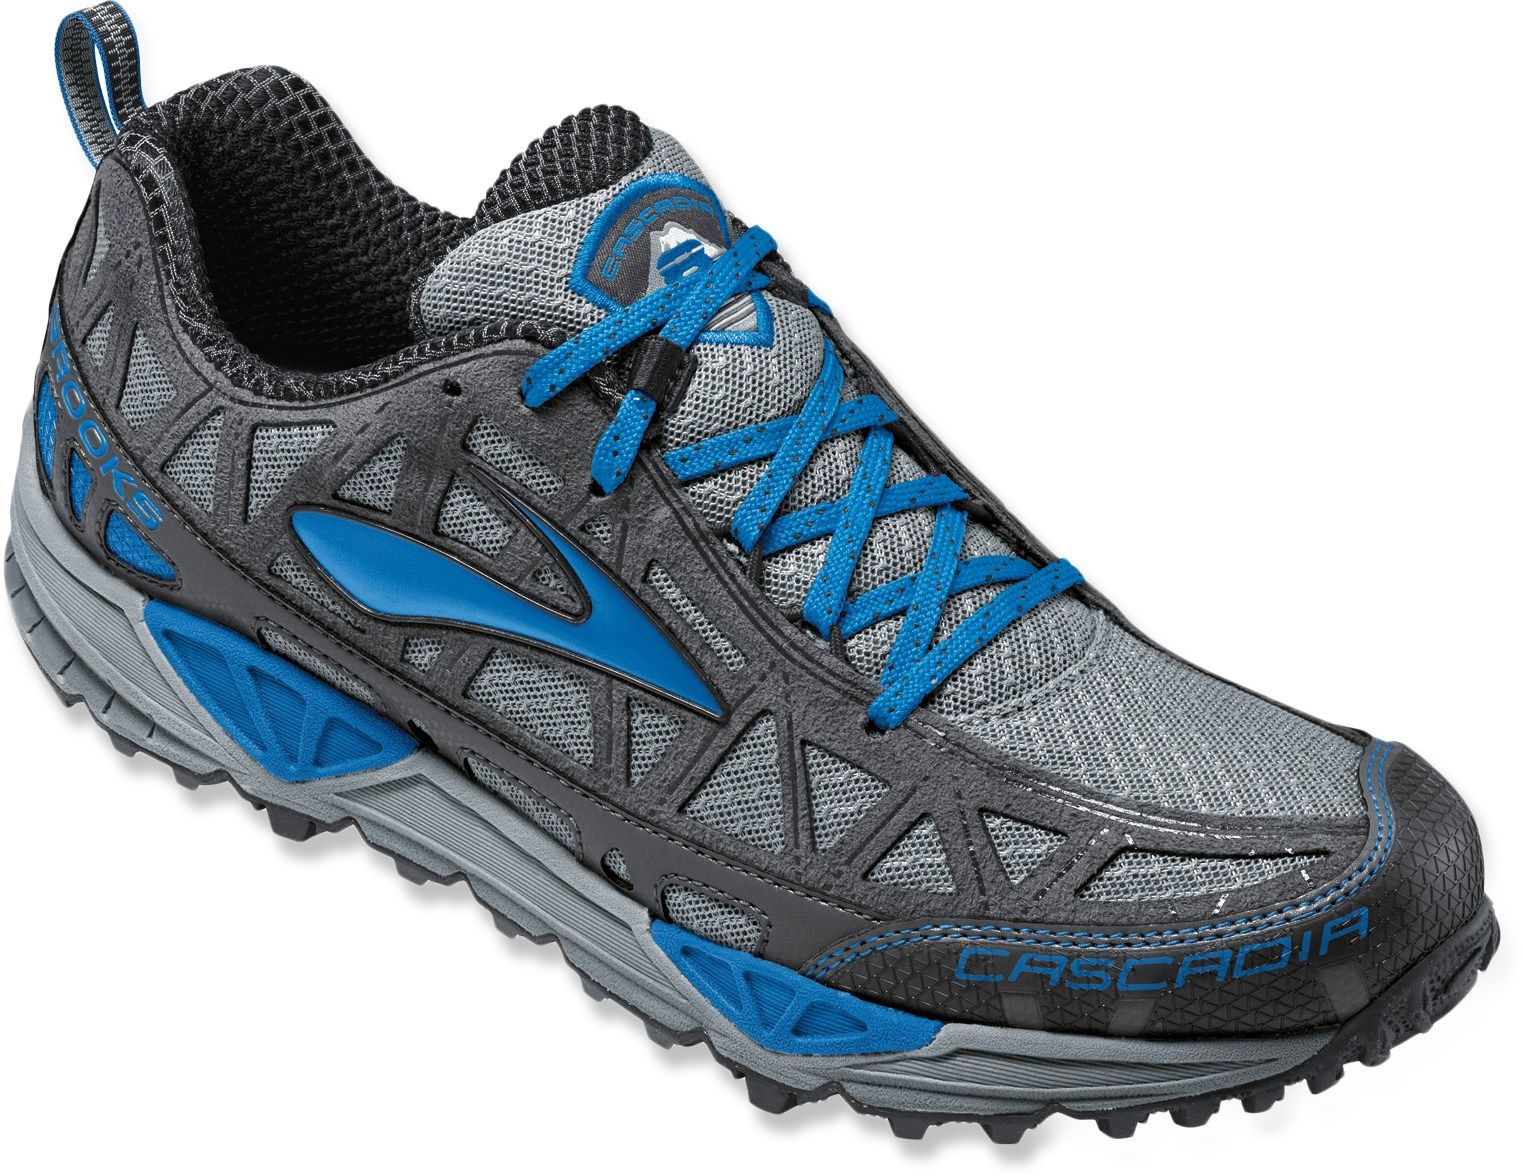 159428737895d Brooks Cascadia 8 Trail-Running Shoes - Men s - Free Shipping at REI.com.  Find this Pin and more ...